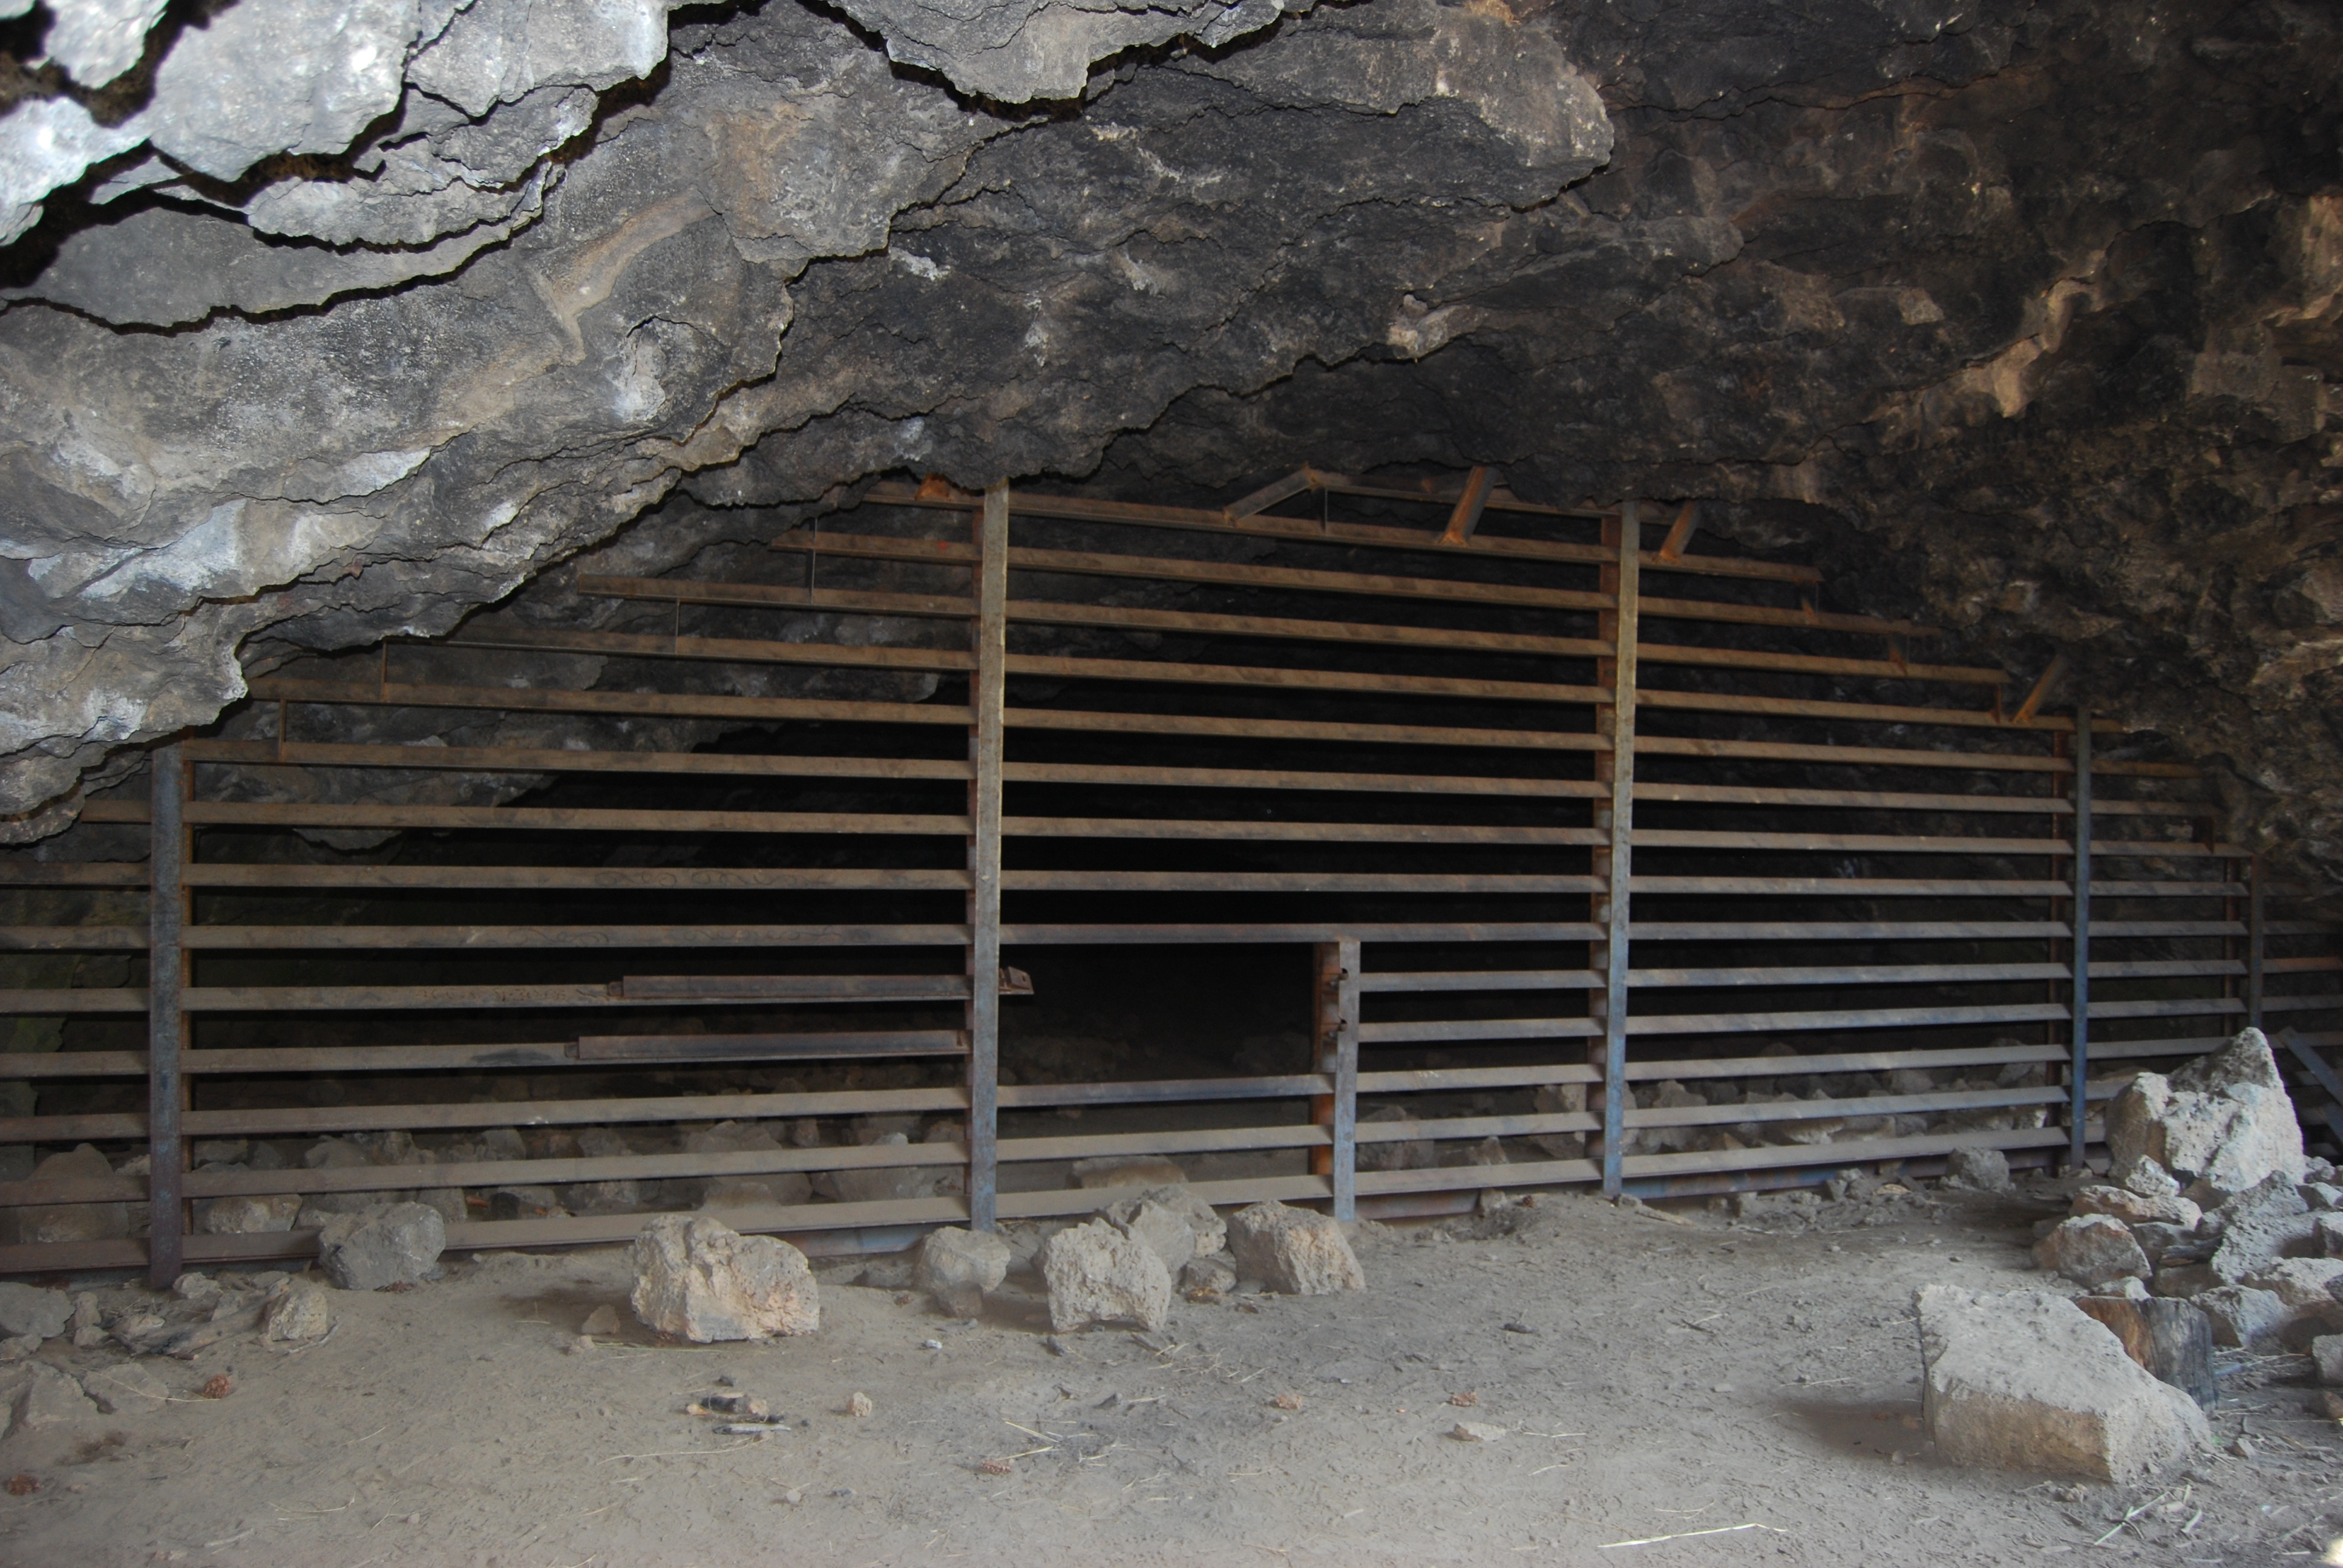 bat cave mature dating site Patio slab, covered patio, chain link fence, partial sprinkler system, double pane windows, storage building/shed, mature trees  21770 bat cave rd, .